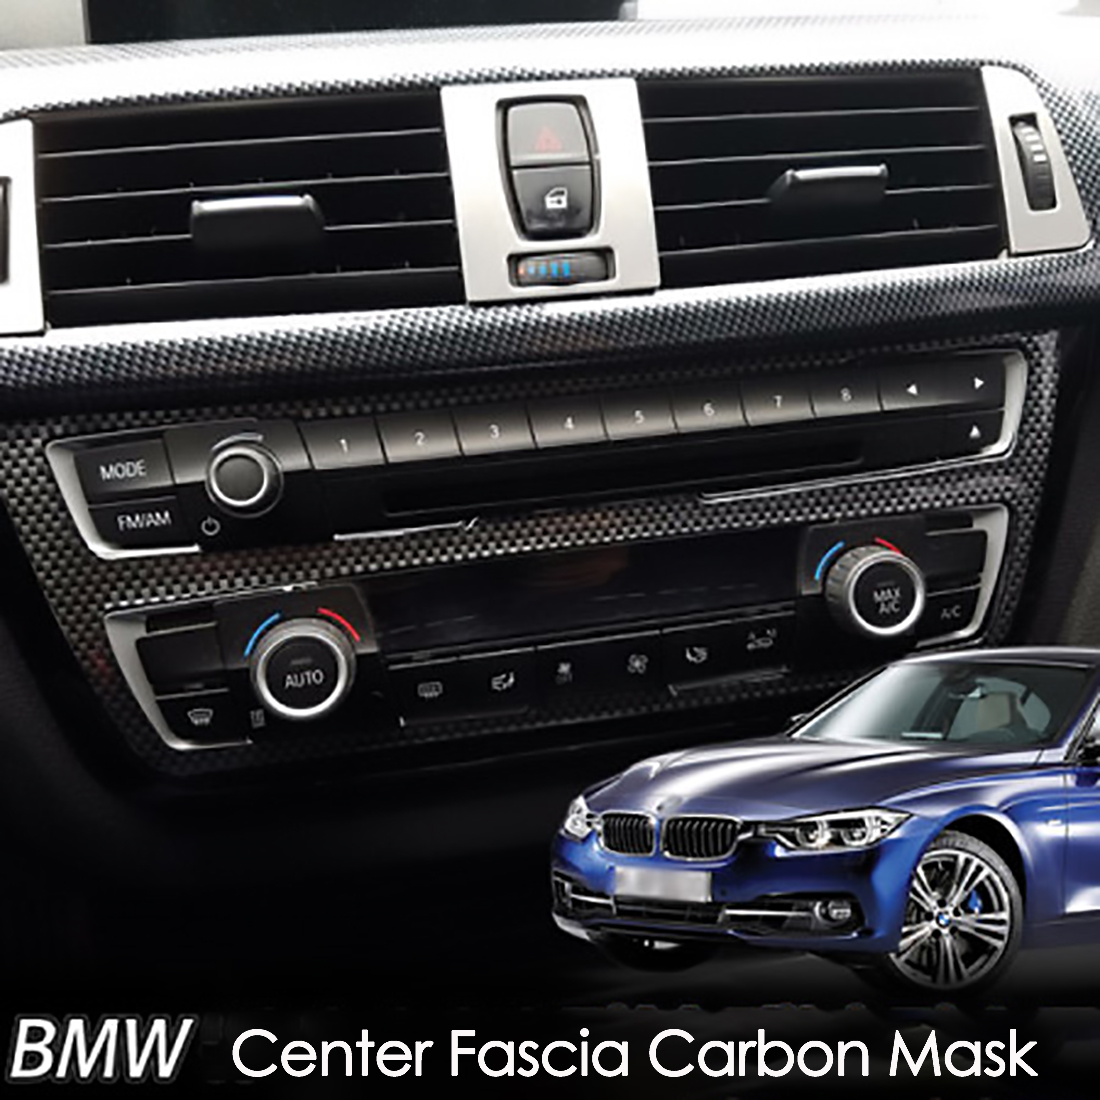 New Carbon Fiber Center Dashboard Consol Cover For Bmw 3series F30 320d 328i Ebay